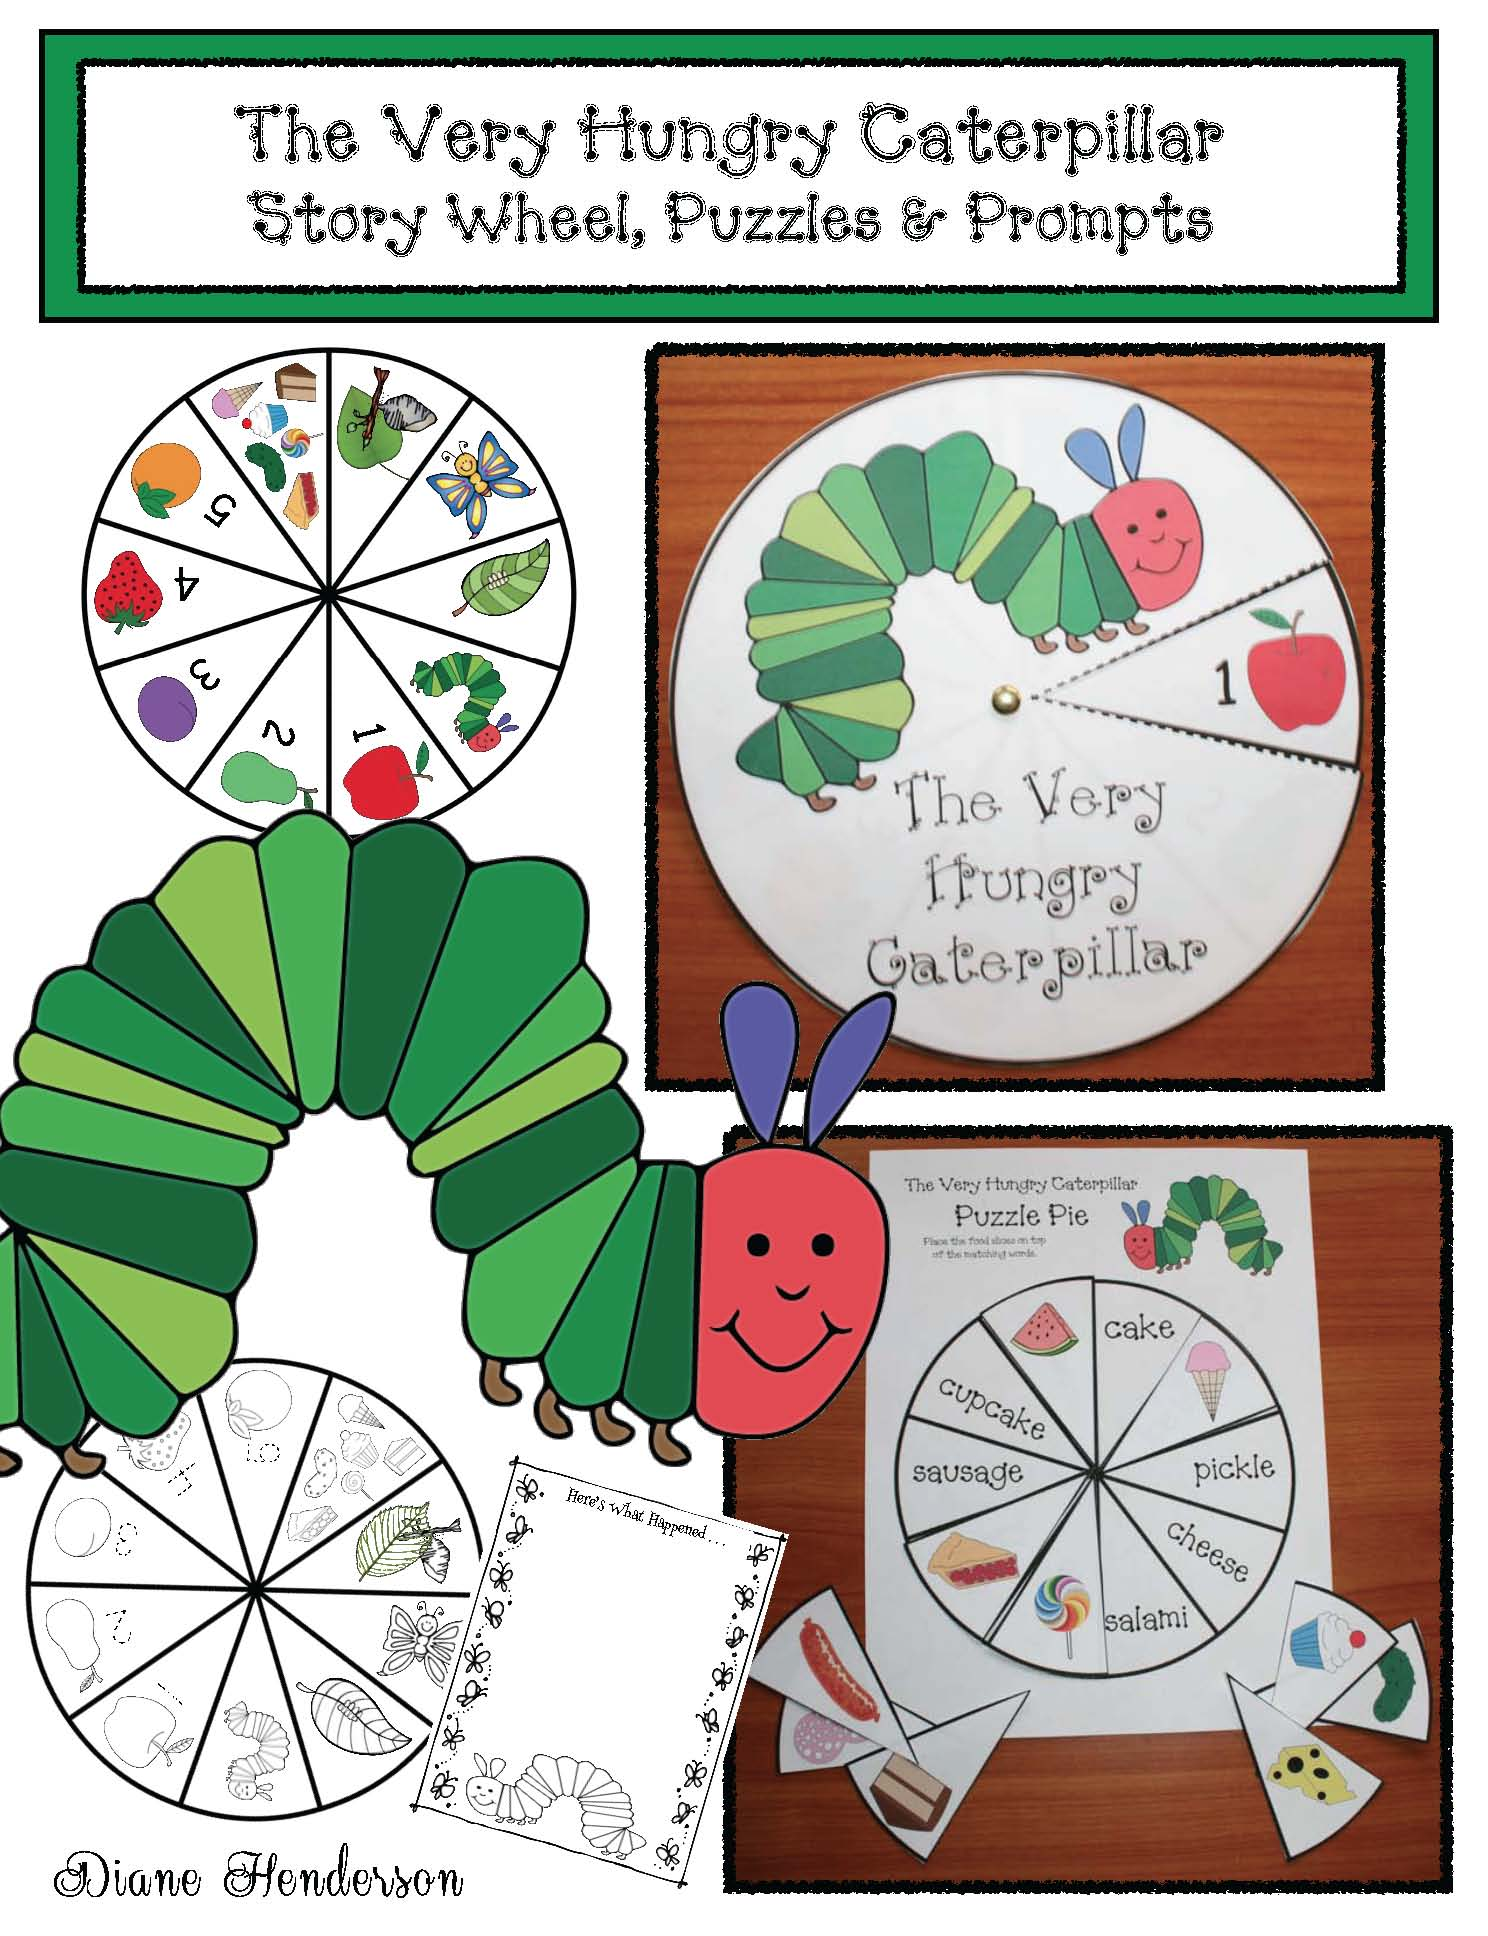 very hungry caterpillar crafts, very hungry caterpillar activities, very hungry caterpillar story elements, fix the sentence activities, word work for spring, story wheels